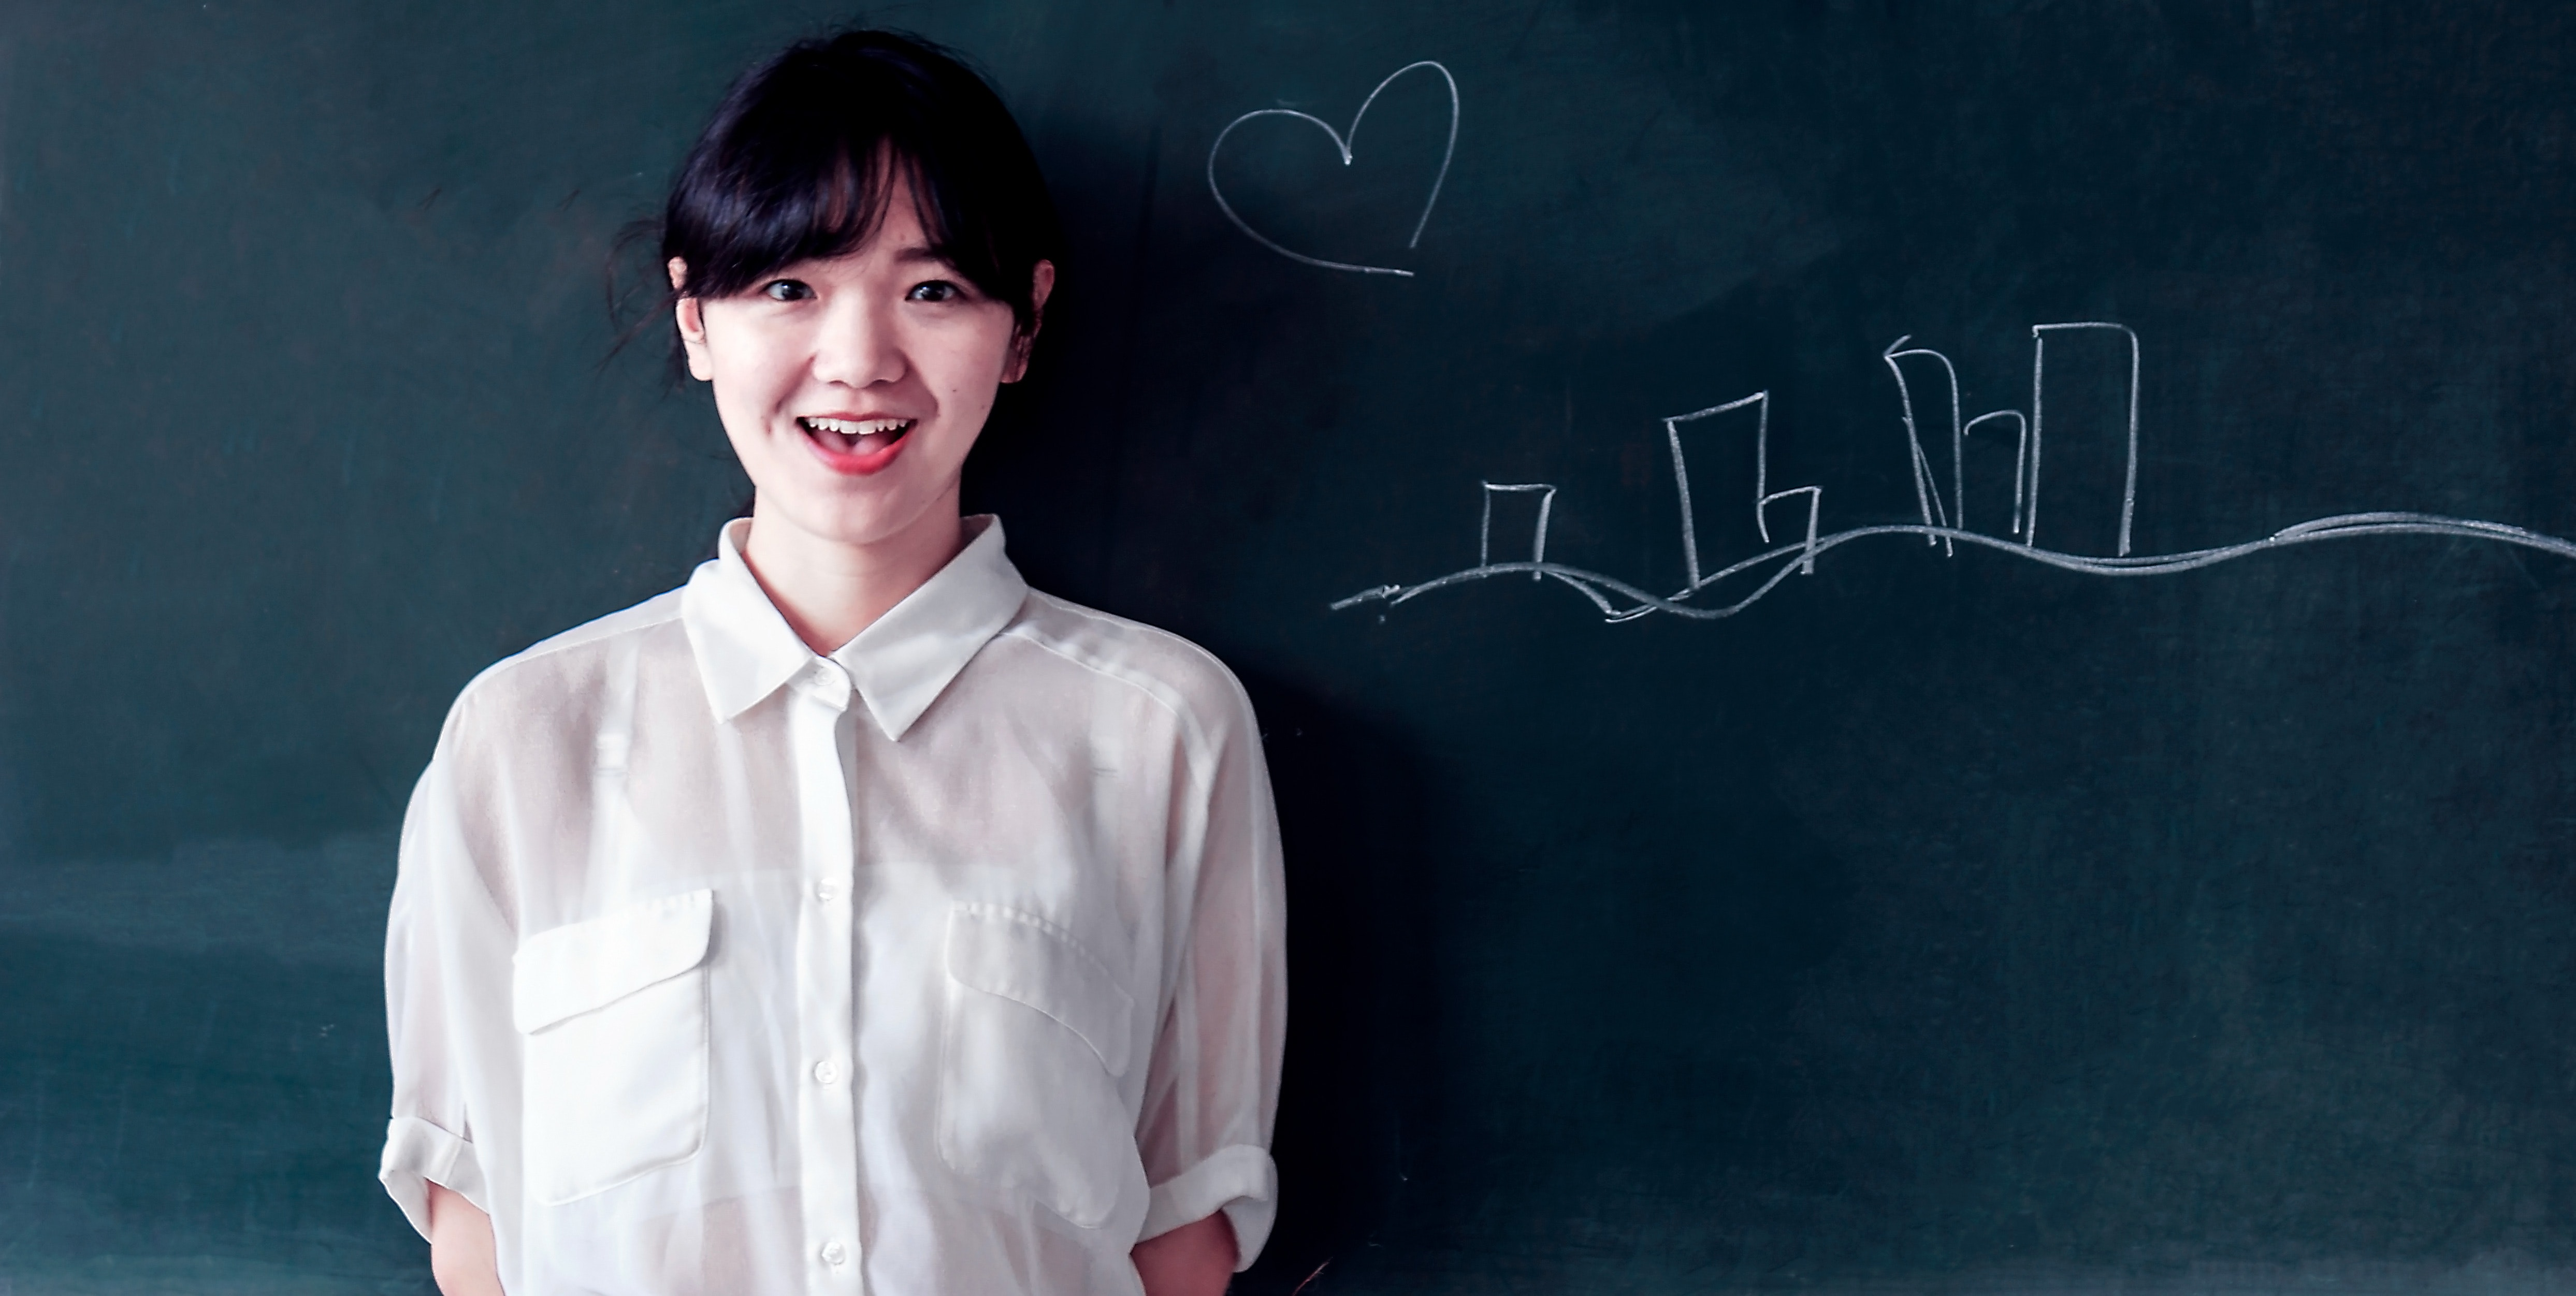 Woman Stands Behind Green Concrete Wall, Learning, Writing, White shirt, Teacher, HQ Photo